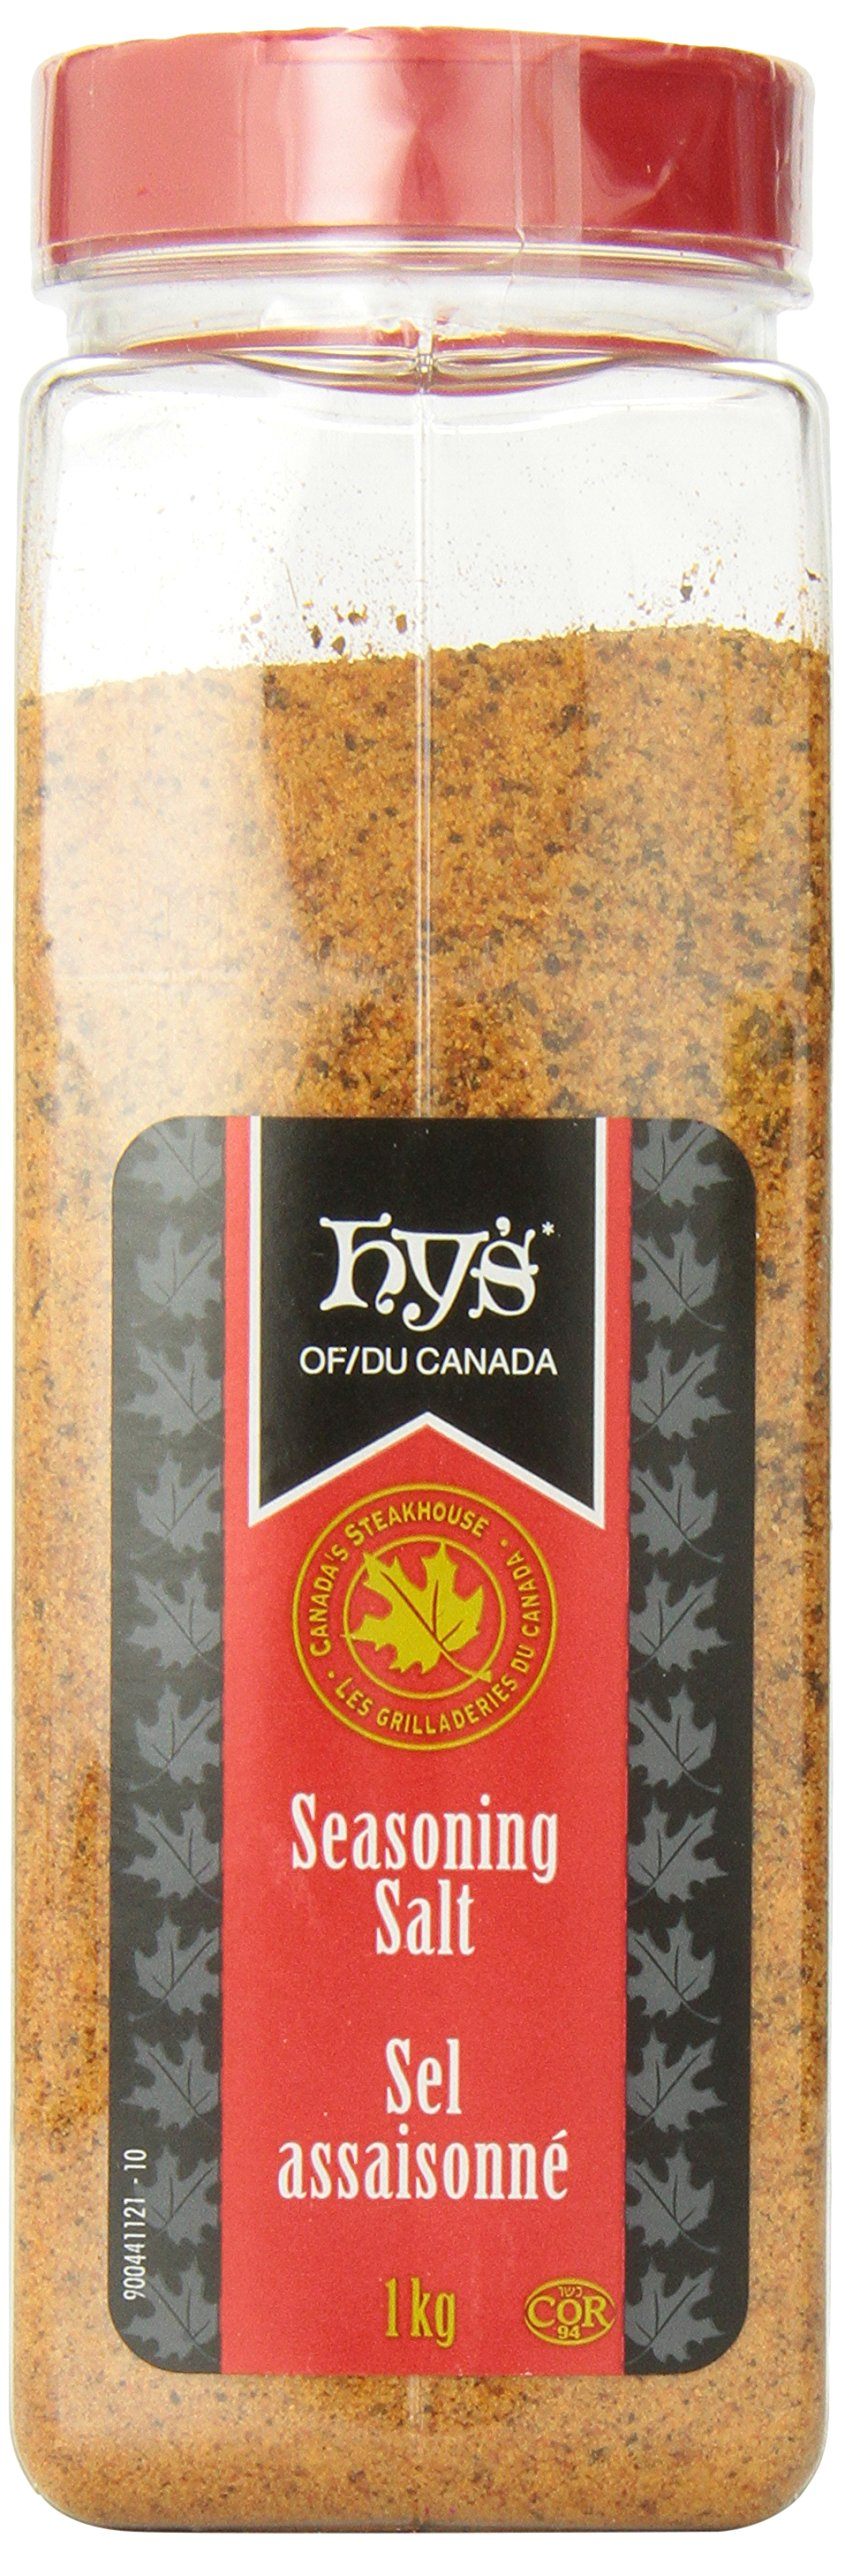 Hy's Seasoning Salt, 1 Kilograms/35.27oz {Imported from Canada}